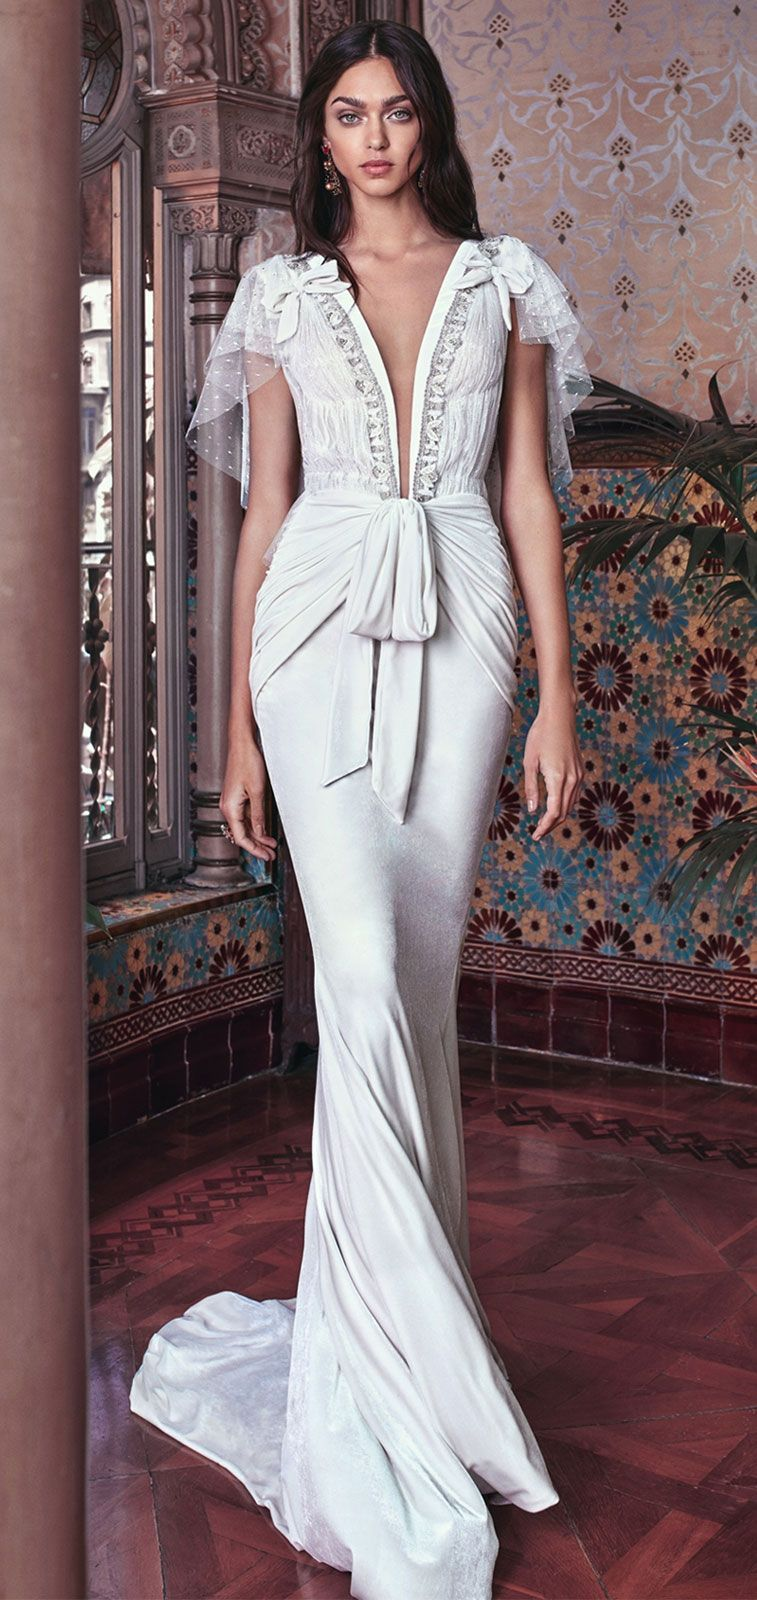 Galia lahav spring bridal collection ucvictorian affinity